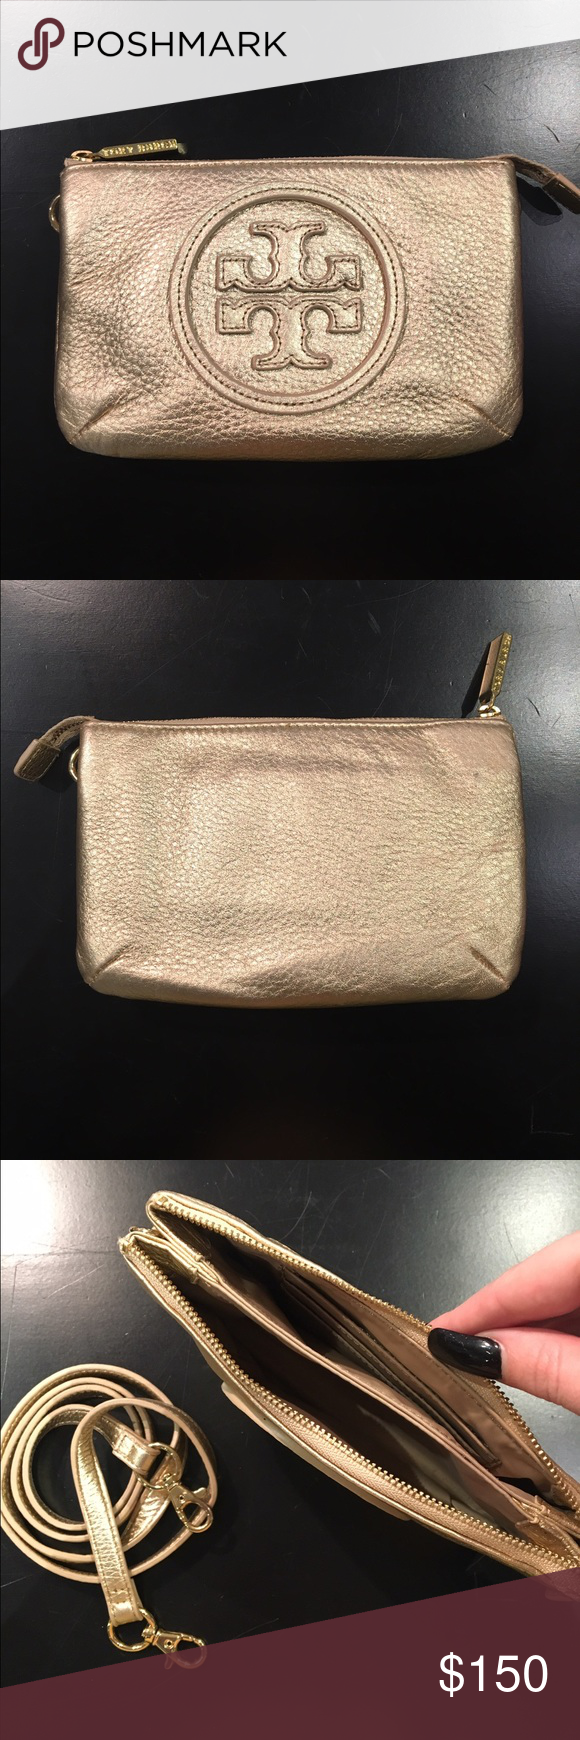 Tory Burch crossbody bag. Tory burch crossbody bag with dual interior. Including credit card slots. Brand new. Tory Burch Bags Crossbody Bags